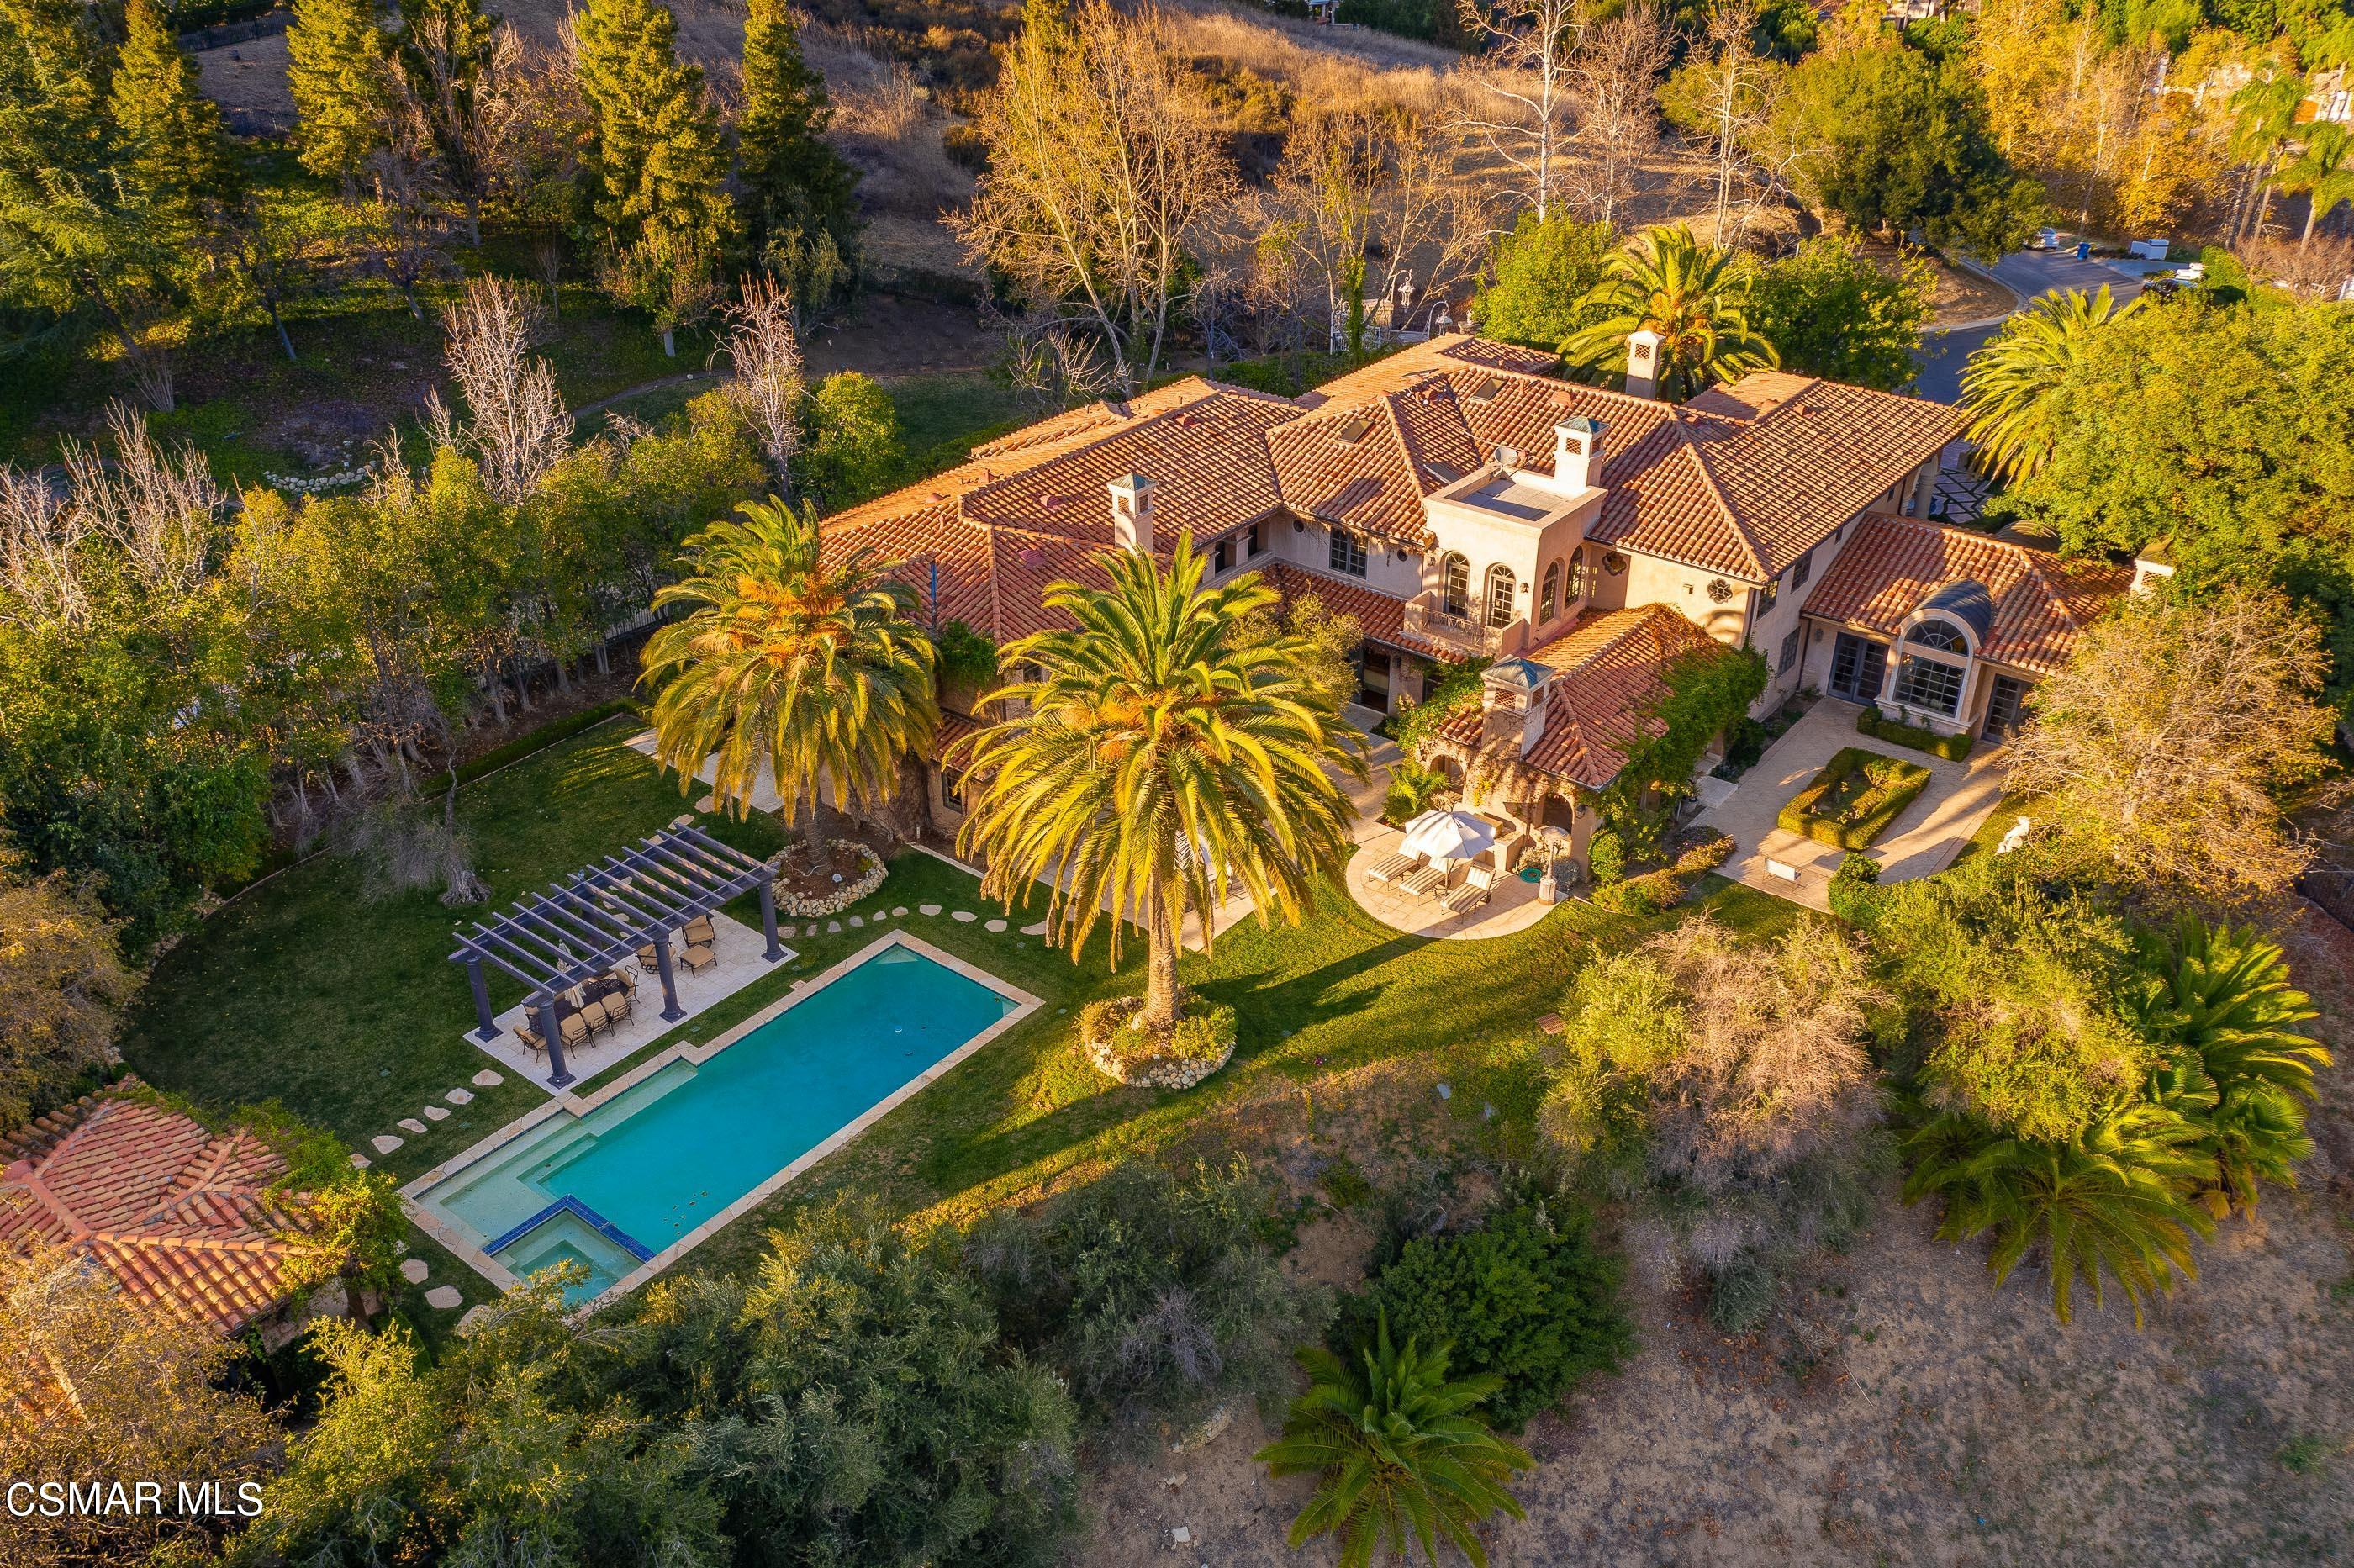 Set upon an approx. 1.5-acre cul-de-sac lot, this Grand Italian Villa is one of the premier estates in Westlake Village! Custom-crafted and designed for entertainment on an epic scale, this Country Club Estates European masterpiece showcases incredible mountain views and affords the utmost in privacy. This approx. 11,000 SqFt home offers an impressive formal living room, 8 bedrooms, 10 baths, and a warm inviting library.  The gourmet kitchen is ideally located adjacent to the family room, finished with distressed wood beamed coffered ceiling, full wet bar, custom copper accents, wine cellar and a striking fireplace. The formal dining room opens to a covered loggia with heated outdoor dining patio and lounge. Also, located on the main level is an incredible apartment suite, complete with a private living space, kitchen and bedroom that opens to the backyard. Up the grand staircase you are welcomed by the expansive master retreat, highlighted with a stunning marble fireplace, two walk-in closets, and dual bathrooms with spa tub and separate Sauna. This level also boasts an additional 4 spacious secondary bedrooms, all with en-suite bathrooms. Designed for enhancing the Southern California indoor/outdoor lifestyle, the expansive and private grounds include separate casita/pool house with fireplace, kitchenette, and full bath. Sprawling lawns, formal gardens, pool and spa, all boasting spectacular mountain views. Welcome to exclusive California living at its best!